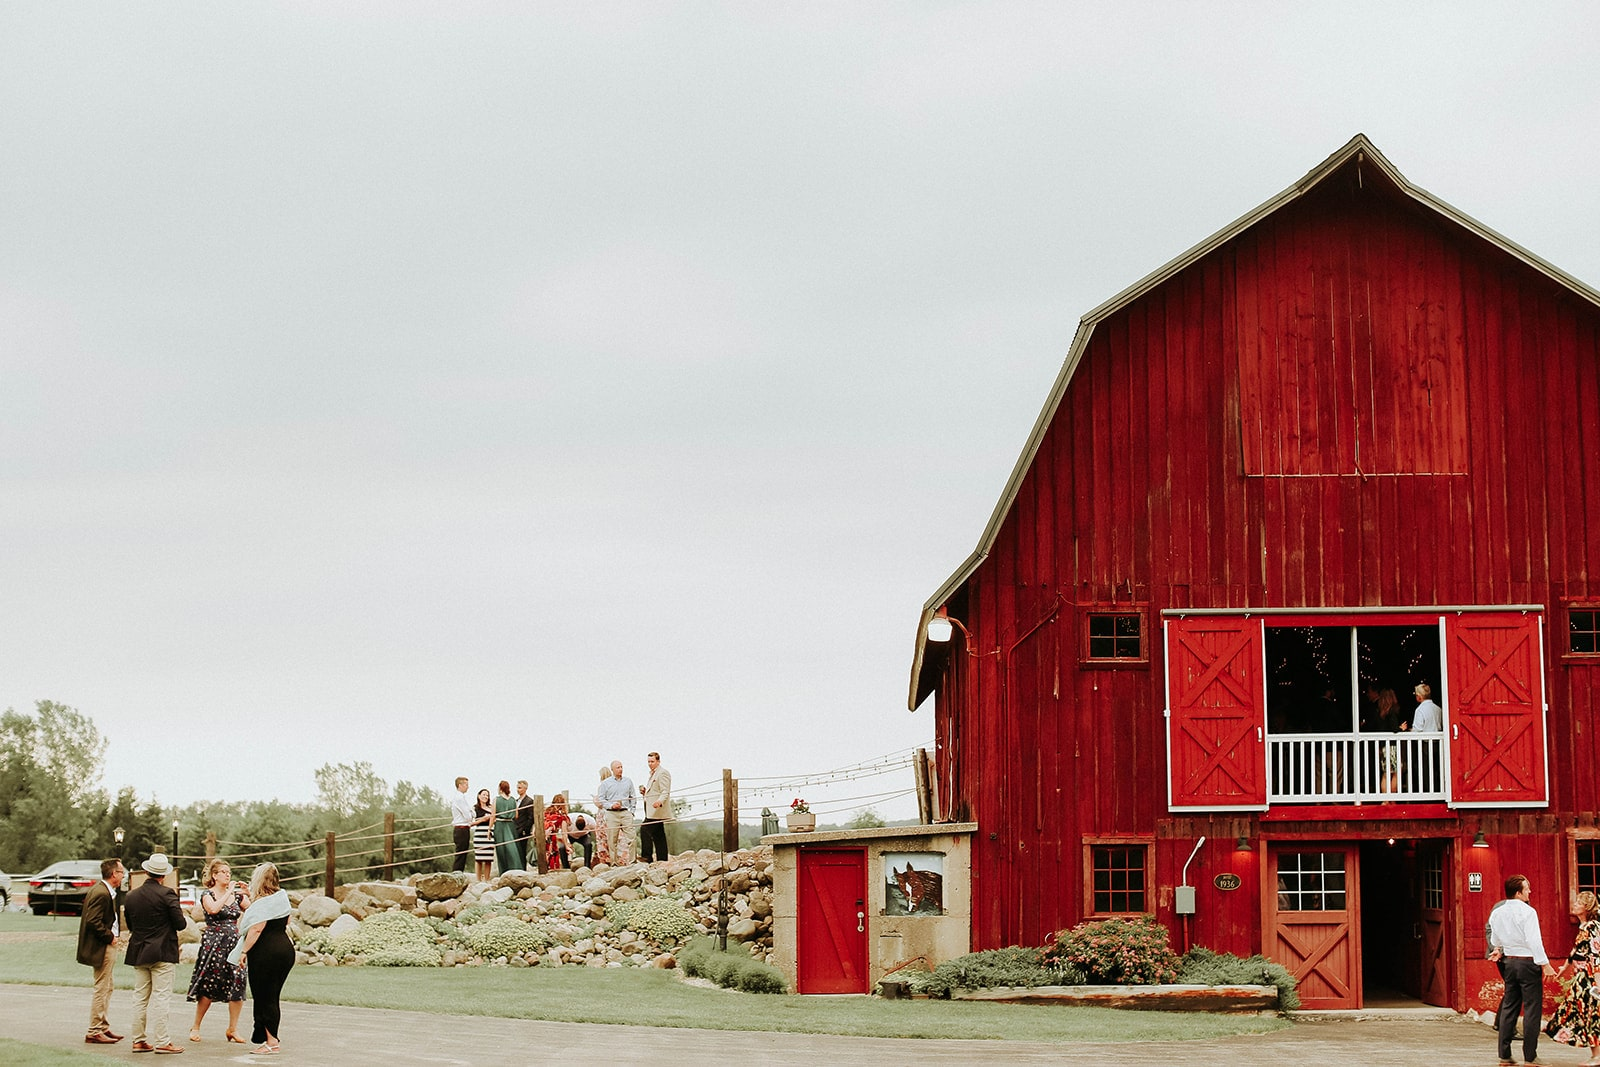 barn-at-back-acres-farm-guests-milling-min.jpg